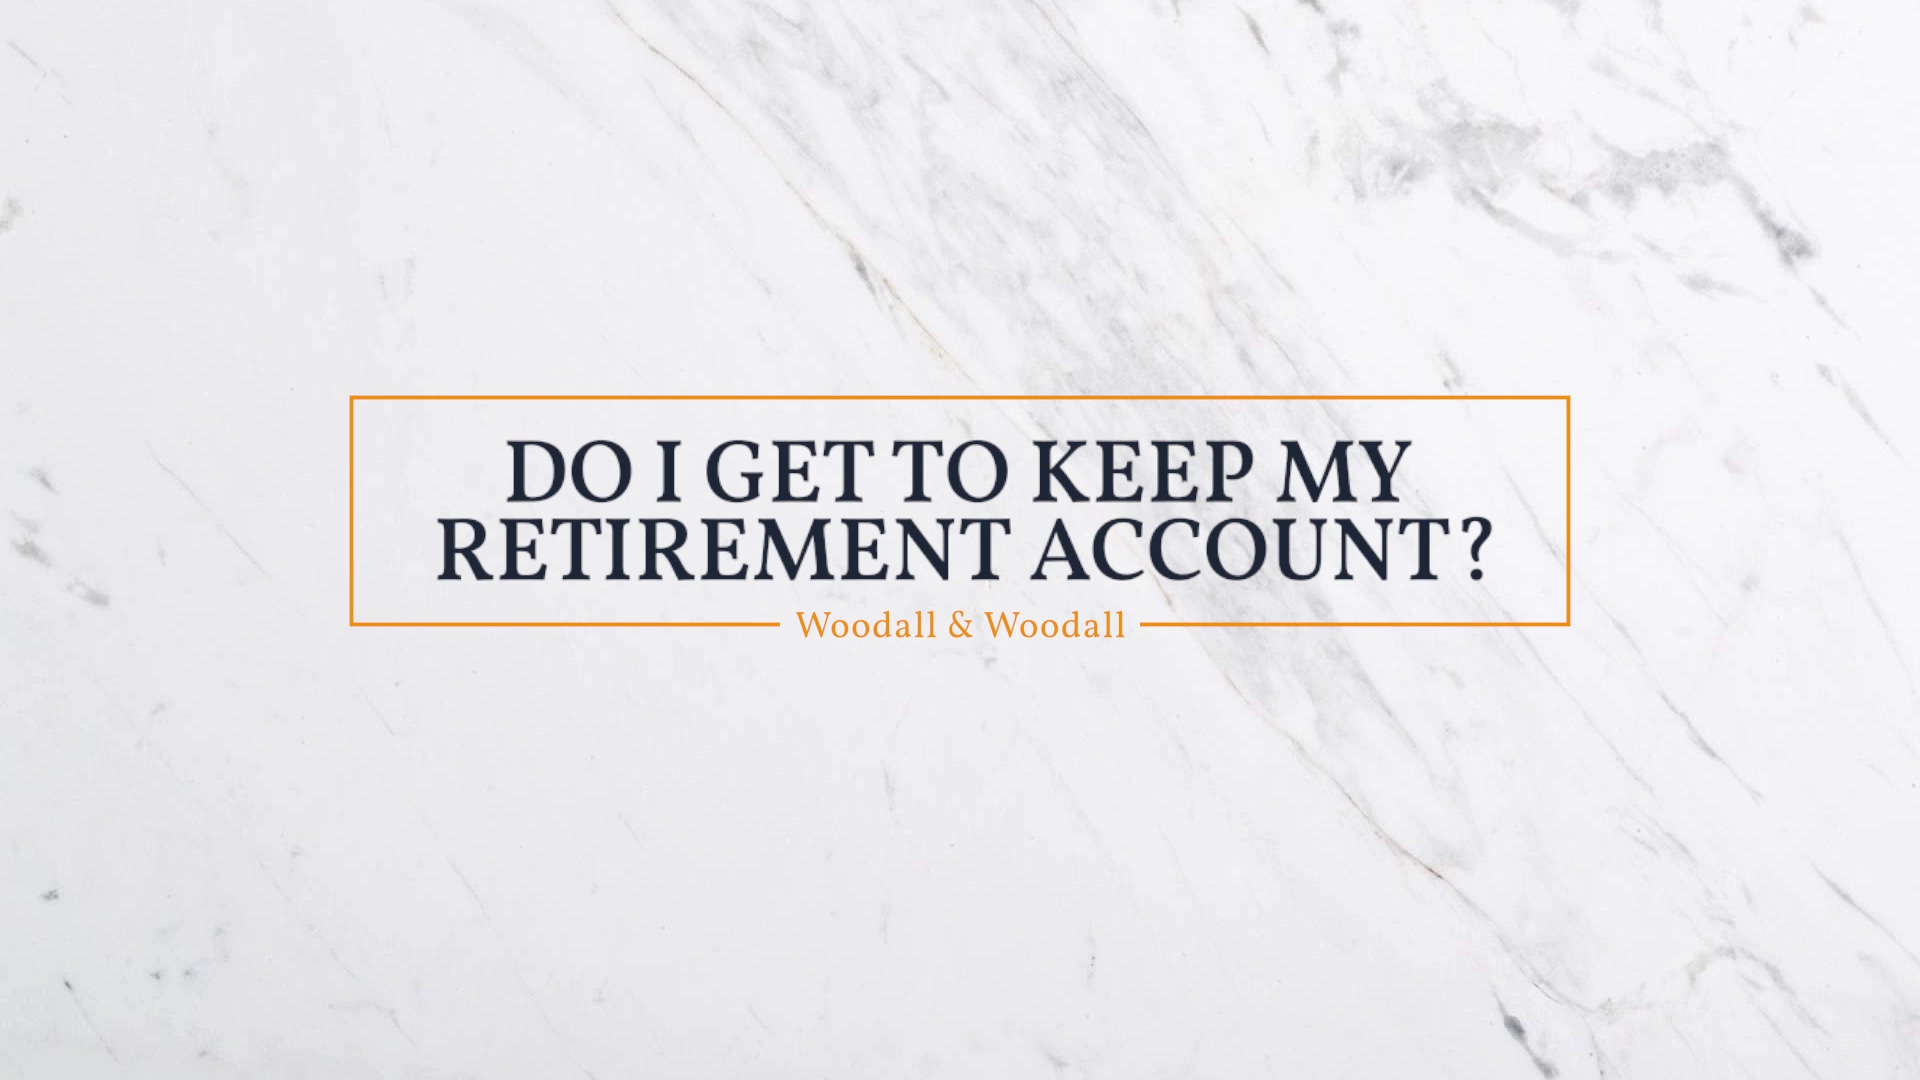 Woodall - Do I get to keep my retirement account